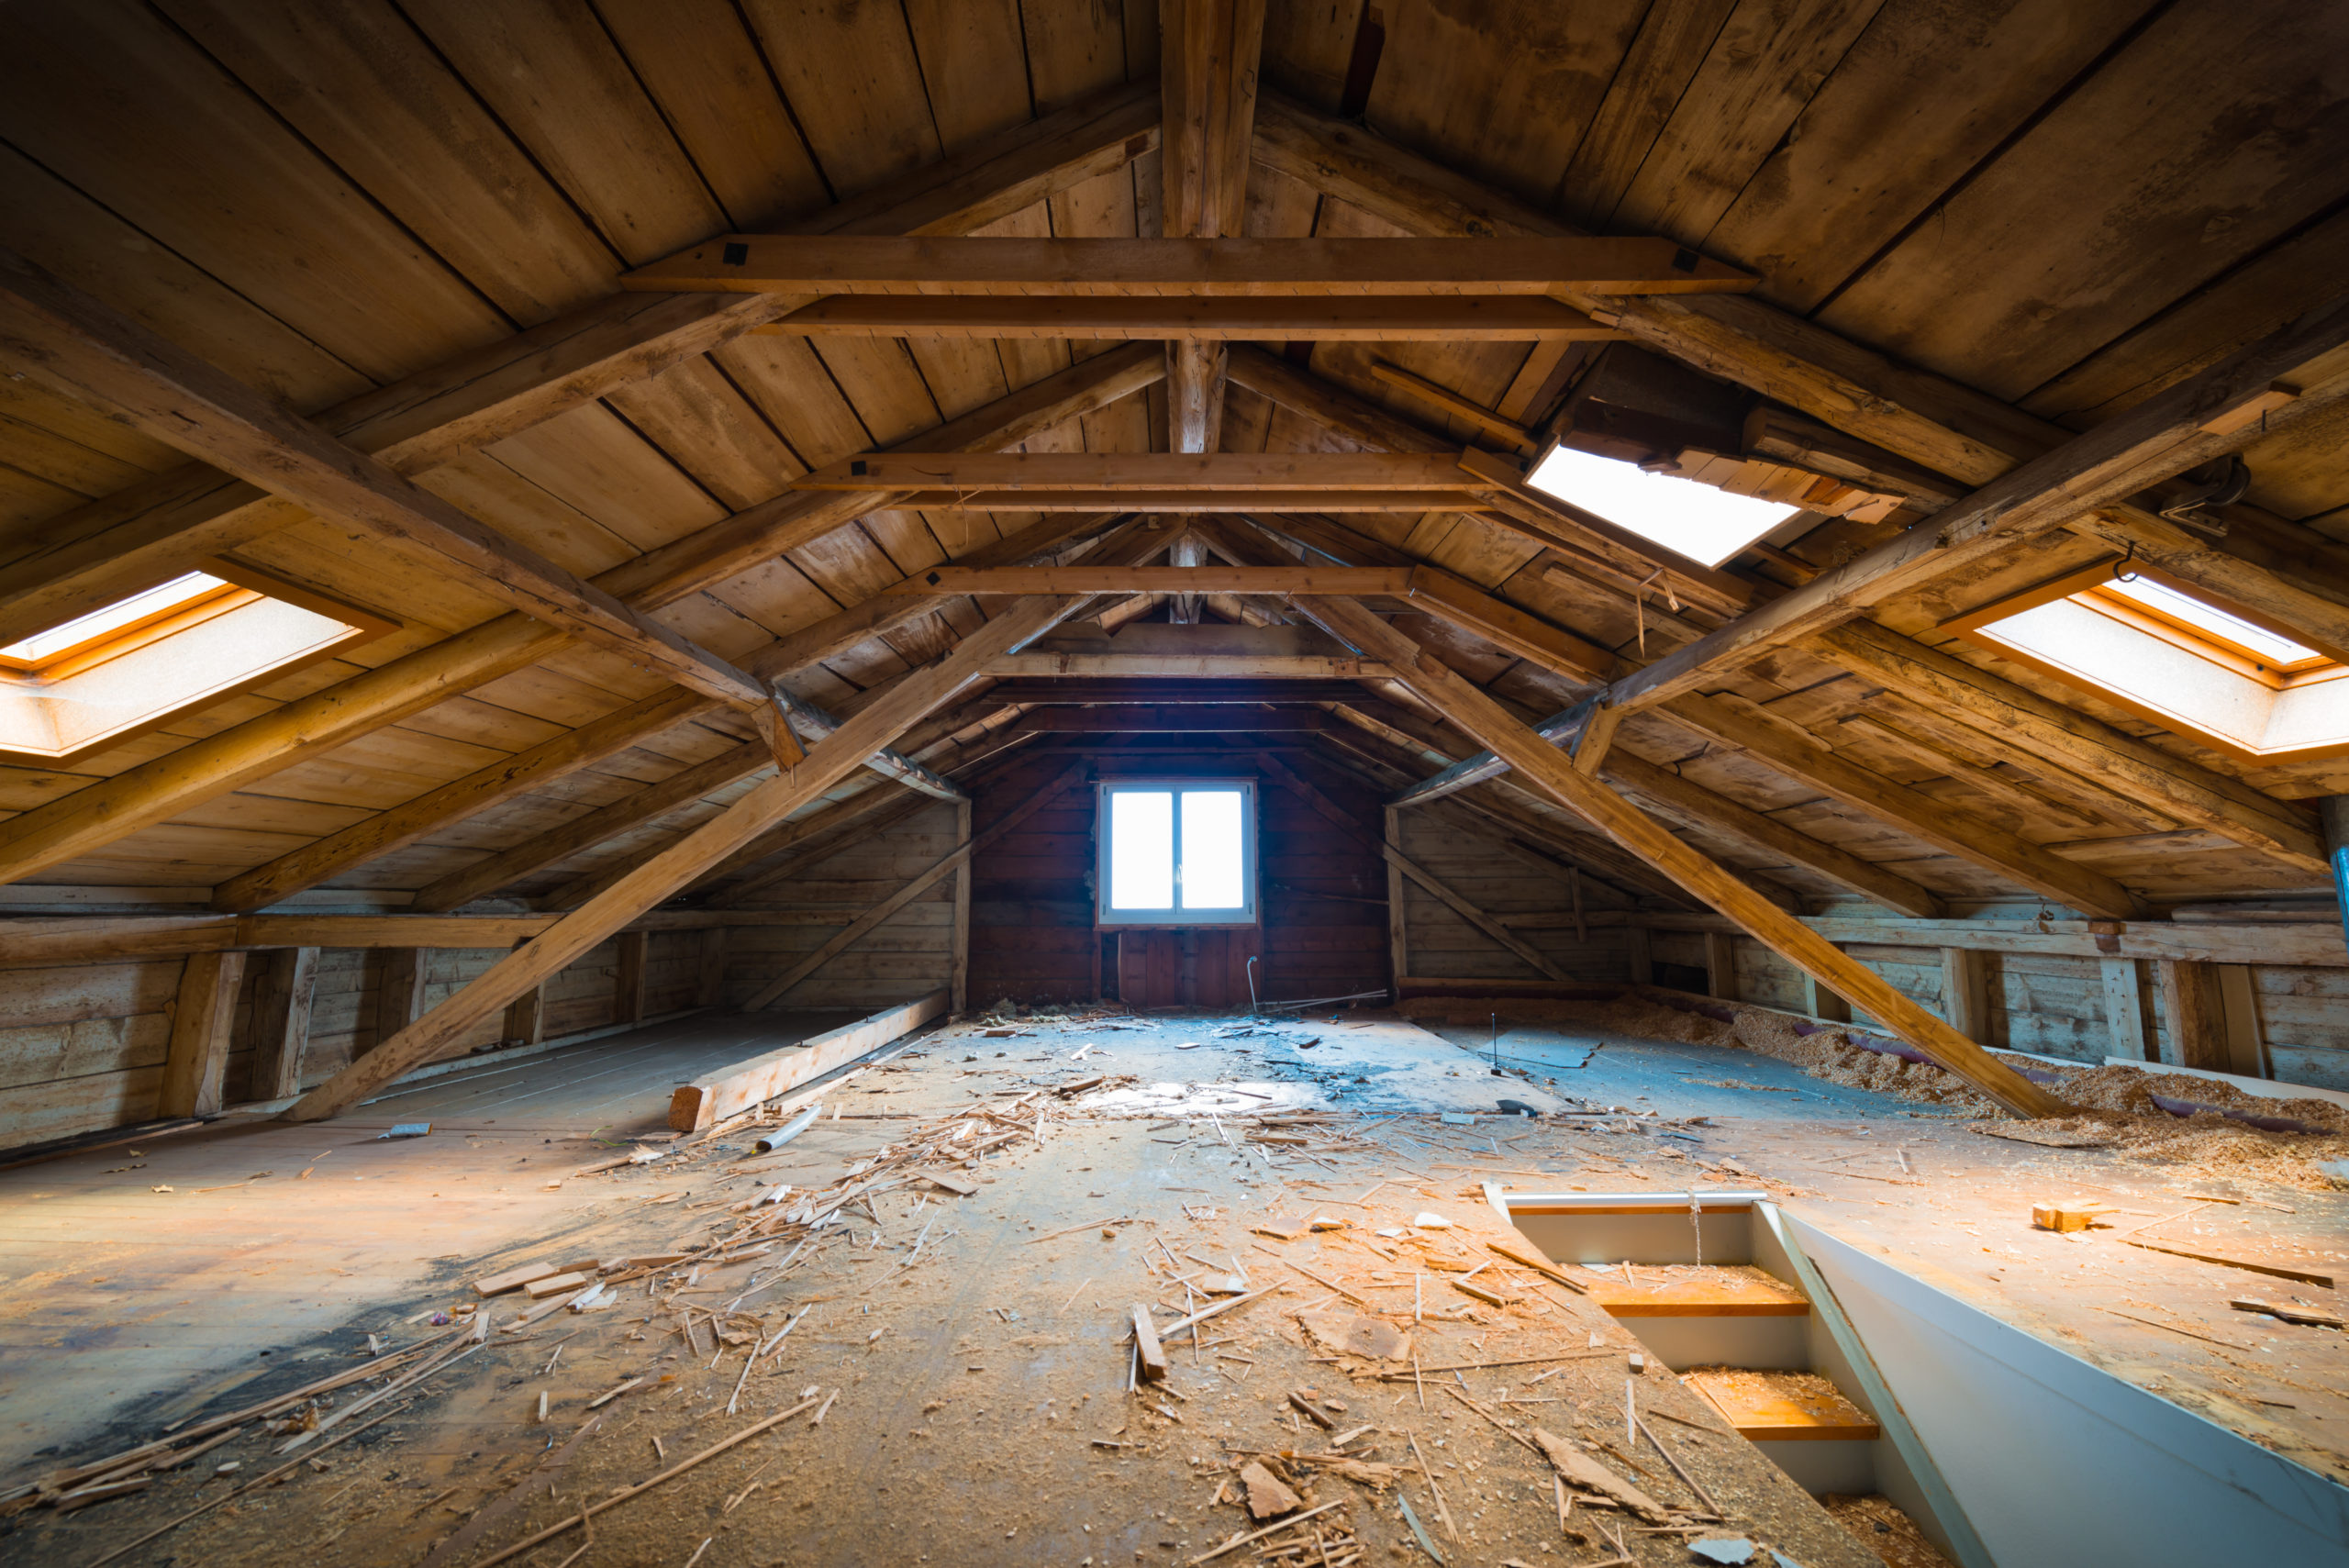 In the attic of a destroyed house.